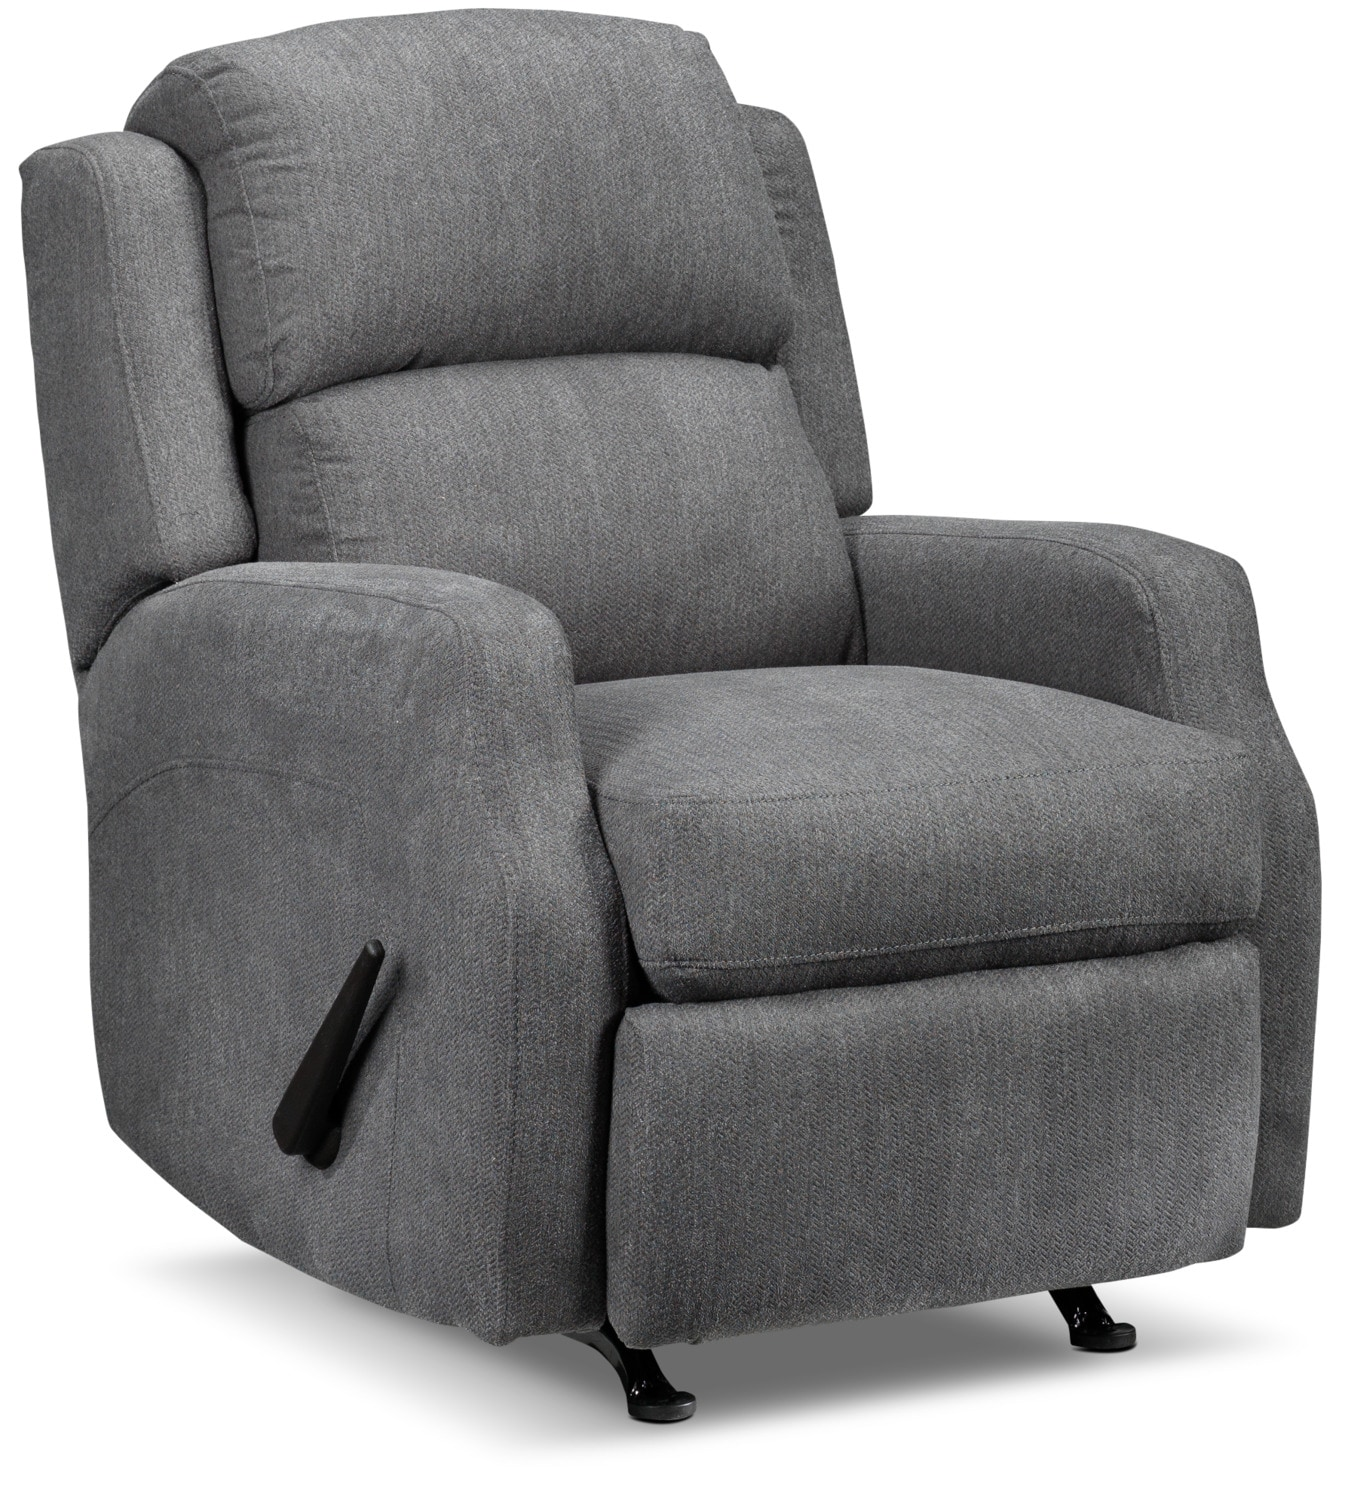 Woodsmoke Rocker Recliner - Dark Grey